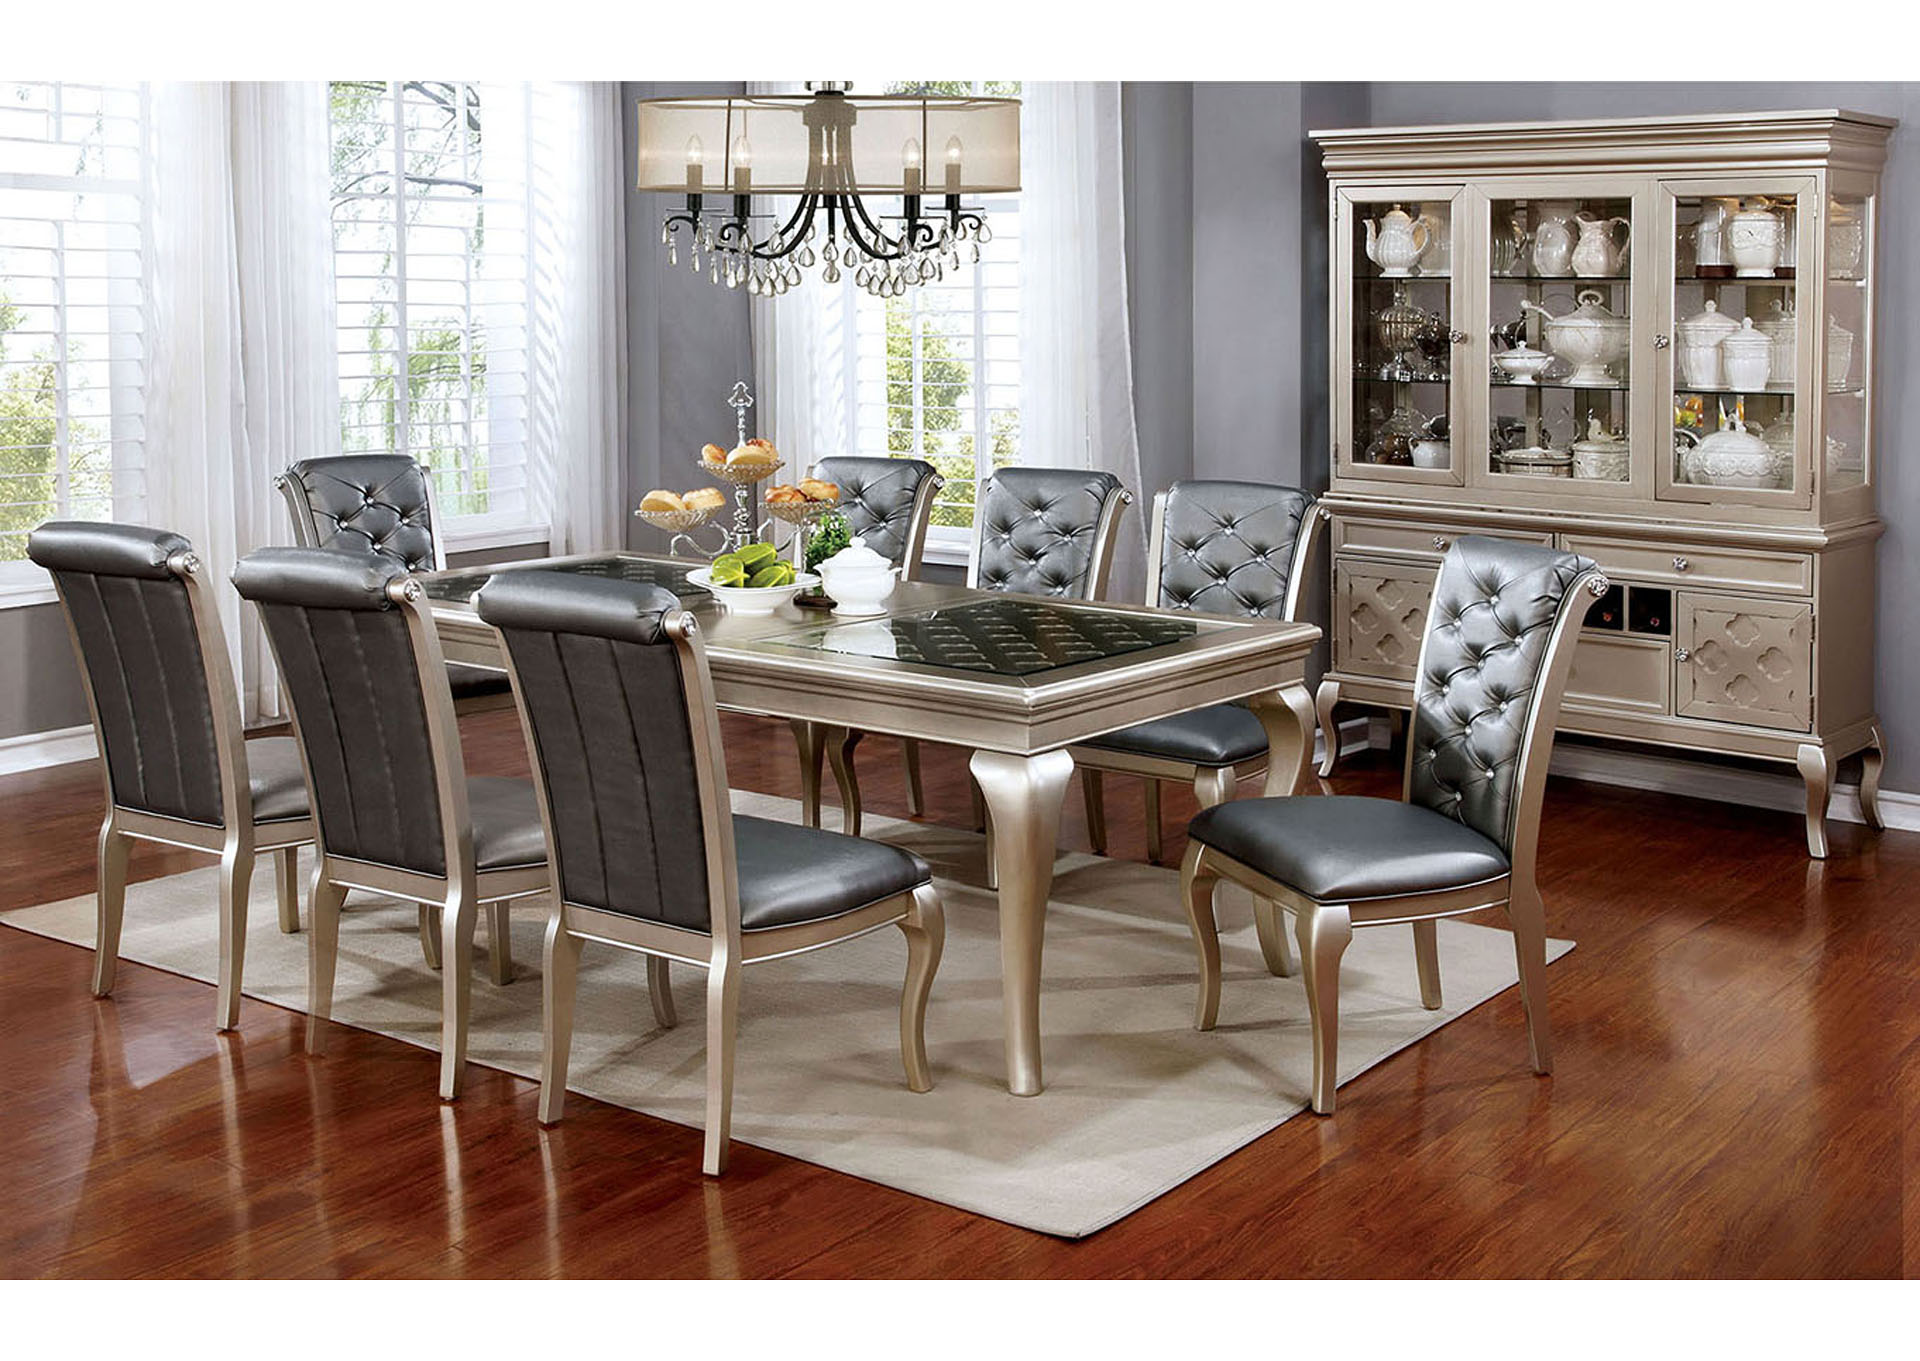 silver dining room set Moreno Valley Furniture Amina Silver Dining Table w/Glass Inserts silver dining room set